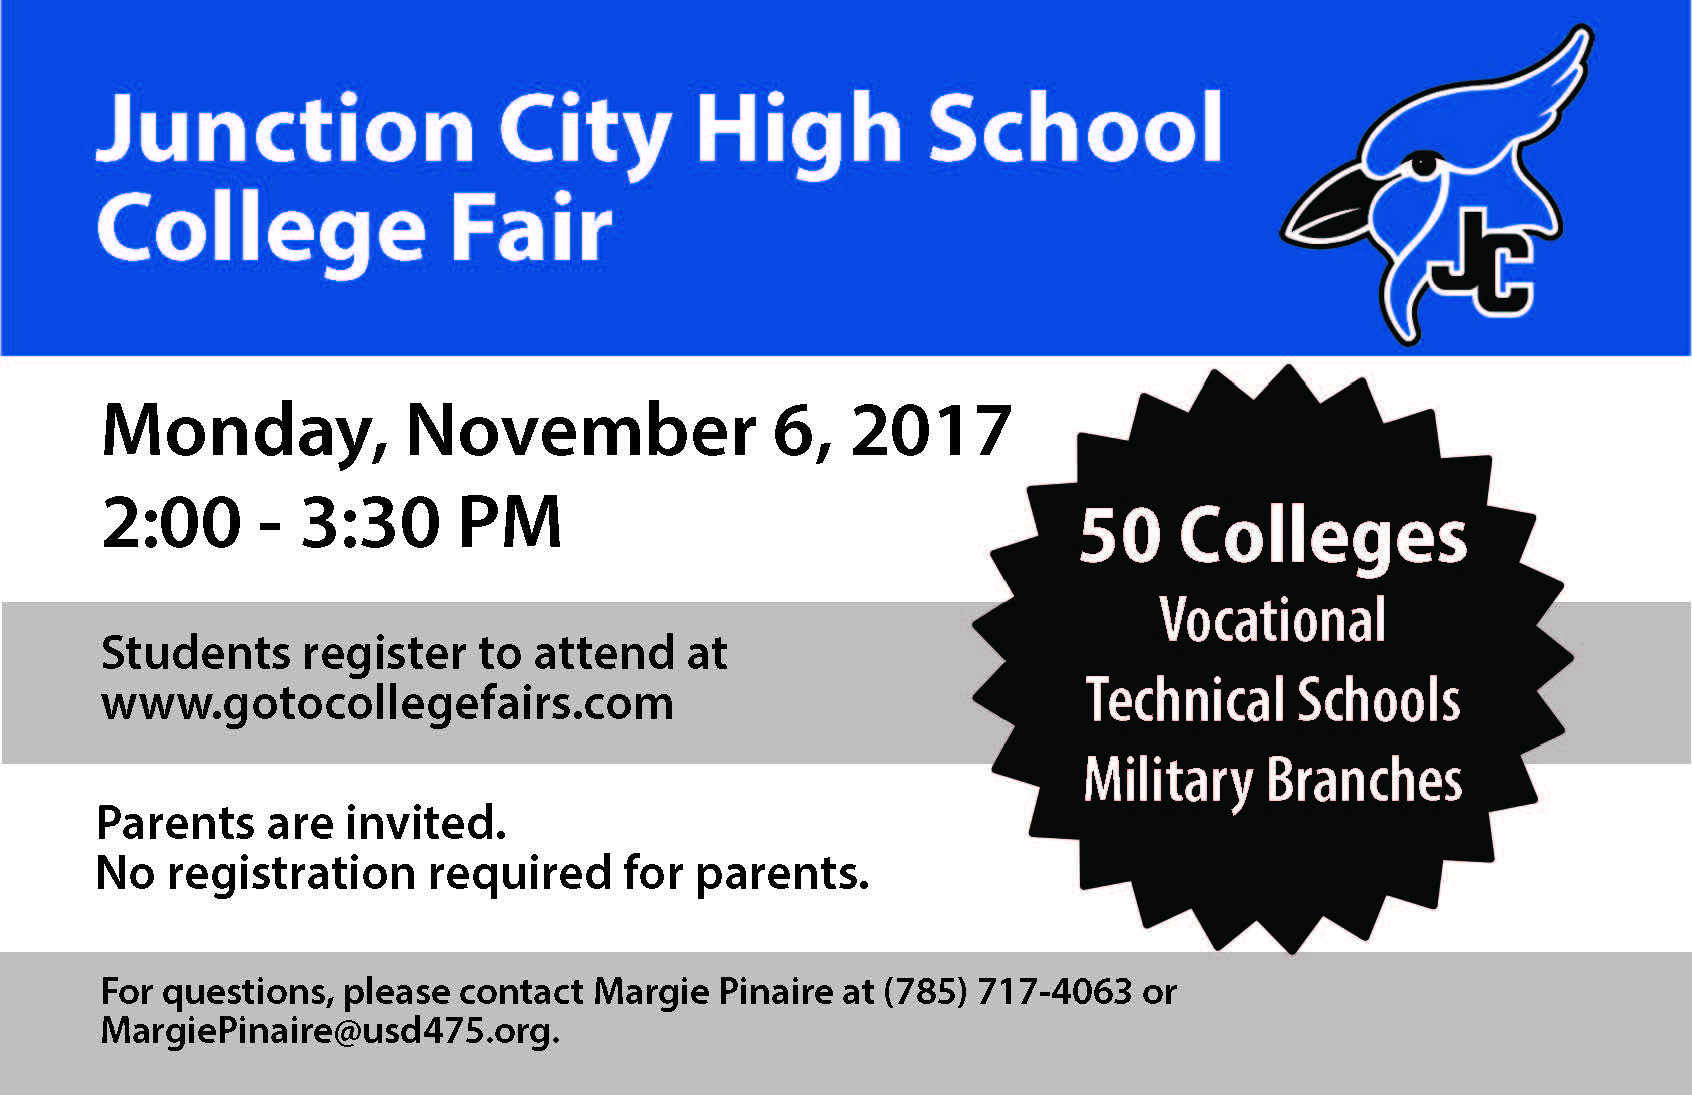 JCHS College Fair Flyer